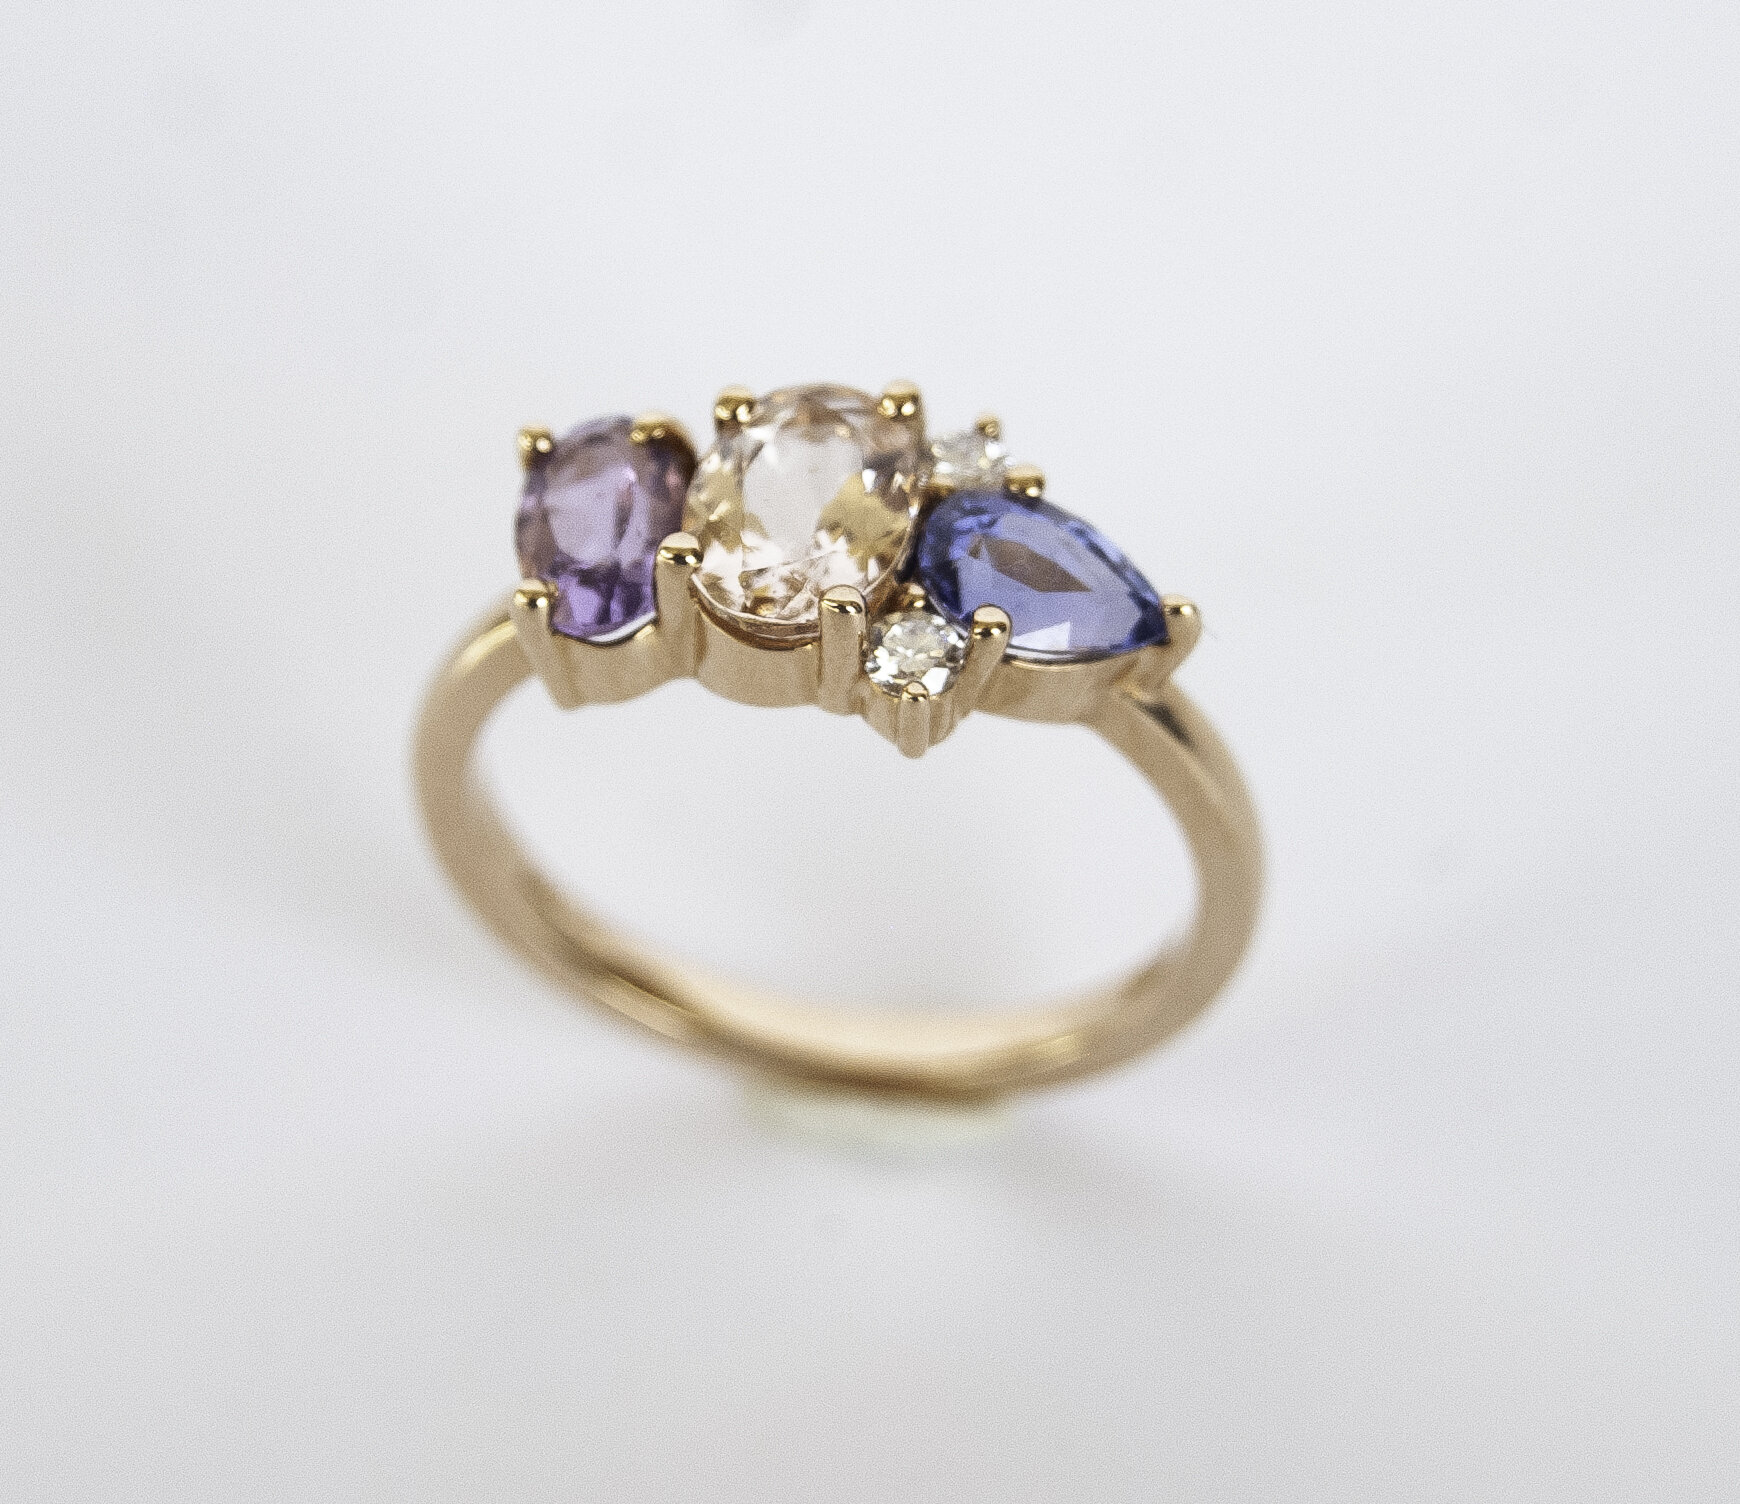 200-913   14 Karat Rose Gold 3 Stone Fashion Ring Size 6.25  one 0.70ct Oval Morganite, one 0.40ct Oval Amethys, one 0.58ct Pear Sapphire  2=0.08tw Round Diamonds $1,863.00